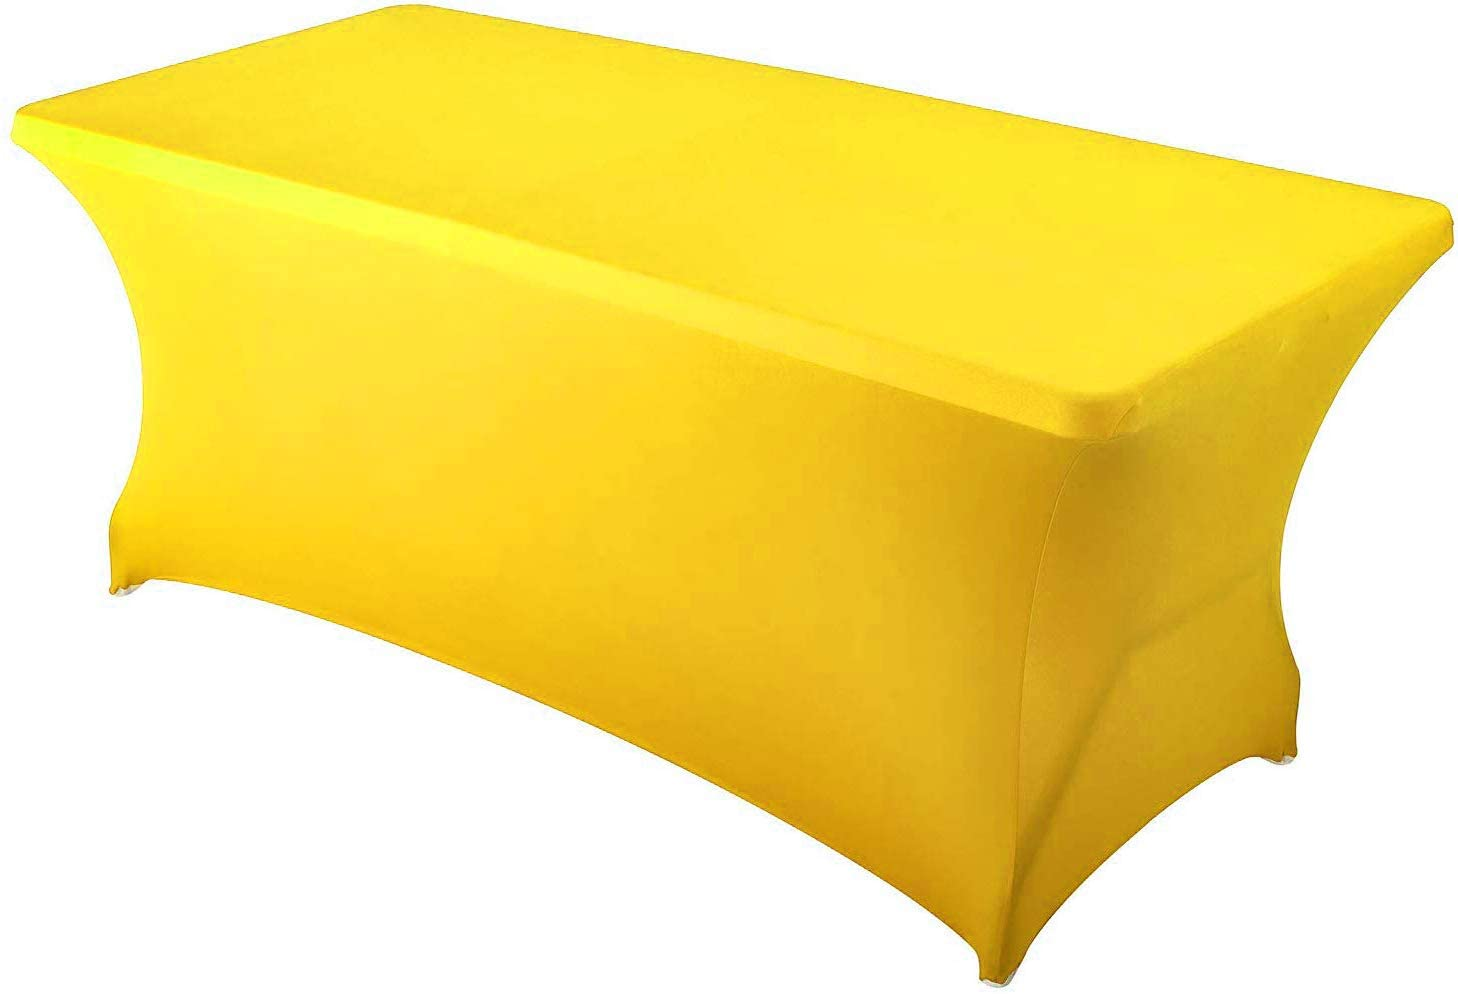 mds Pack of 10 Rectangular Stretch Spandex Table Cover 8ft Fitted Spandex Tablecloths for Wedding Decorations Table Toppers - Yellow (8ft)